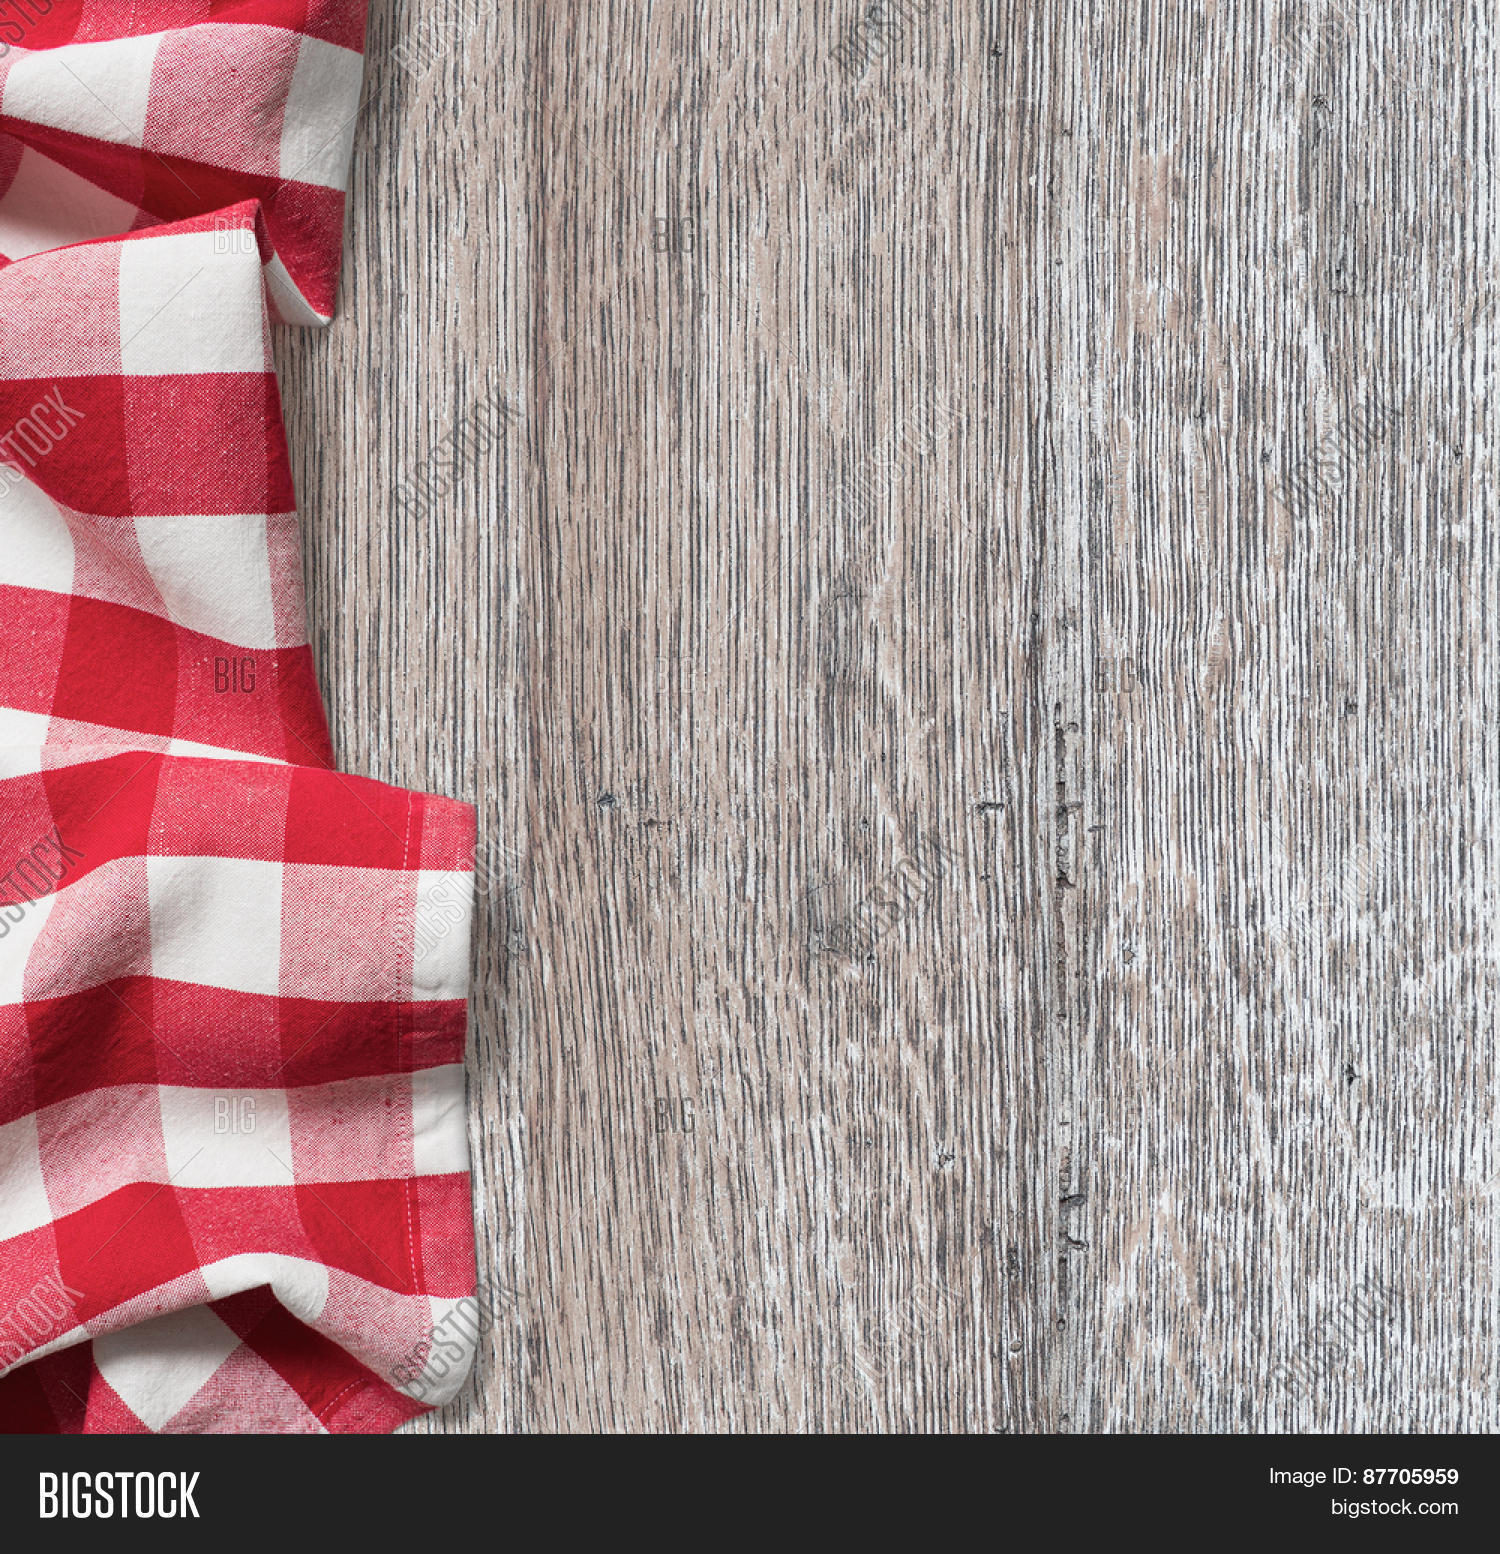 Rough Wood Kitchen Table Red Picnic Image & Photo | Bigstock